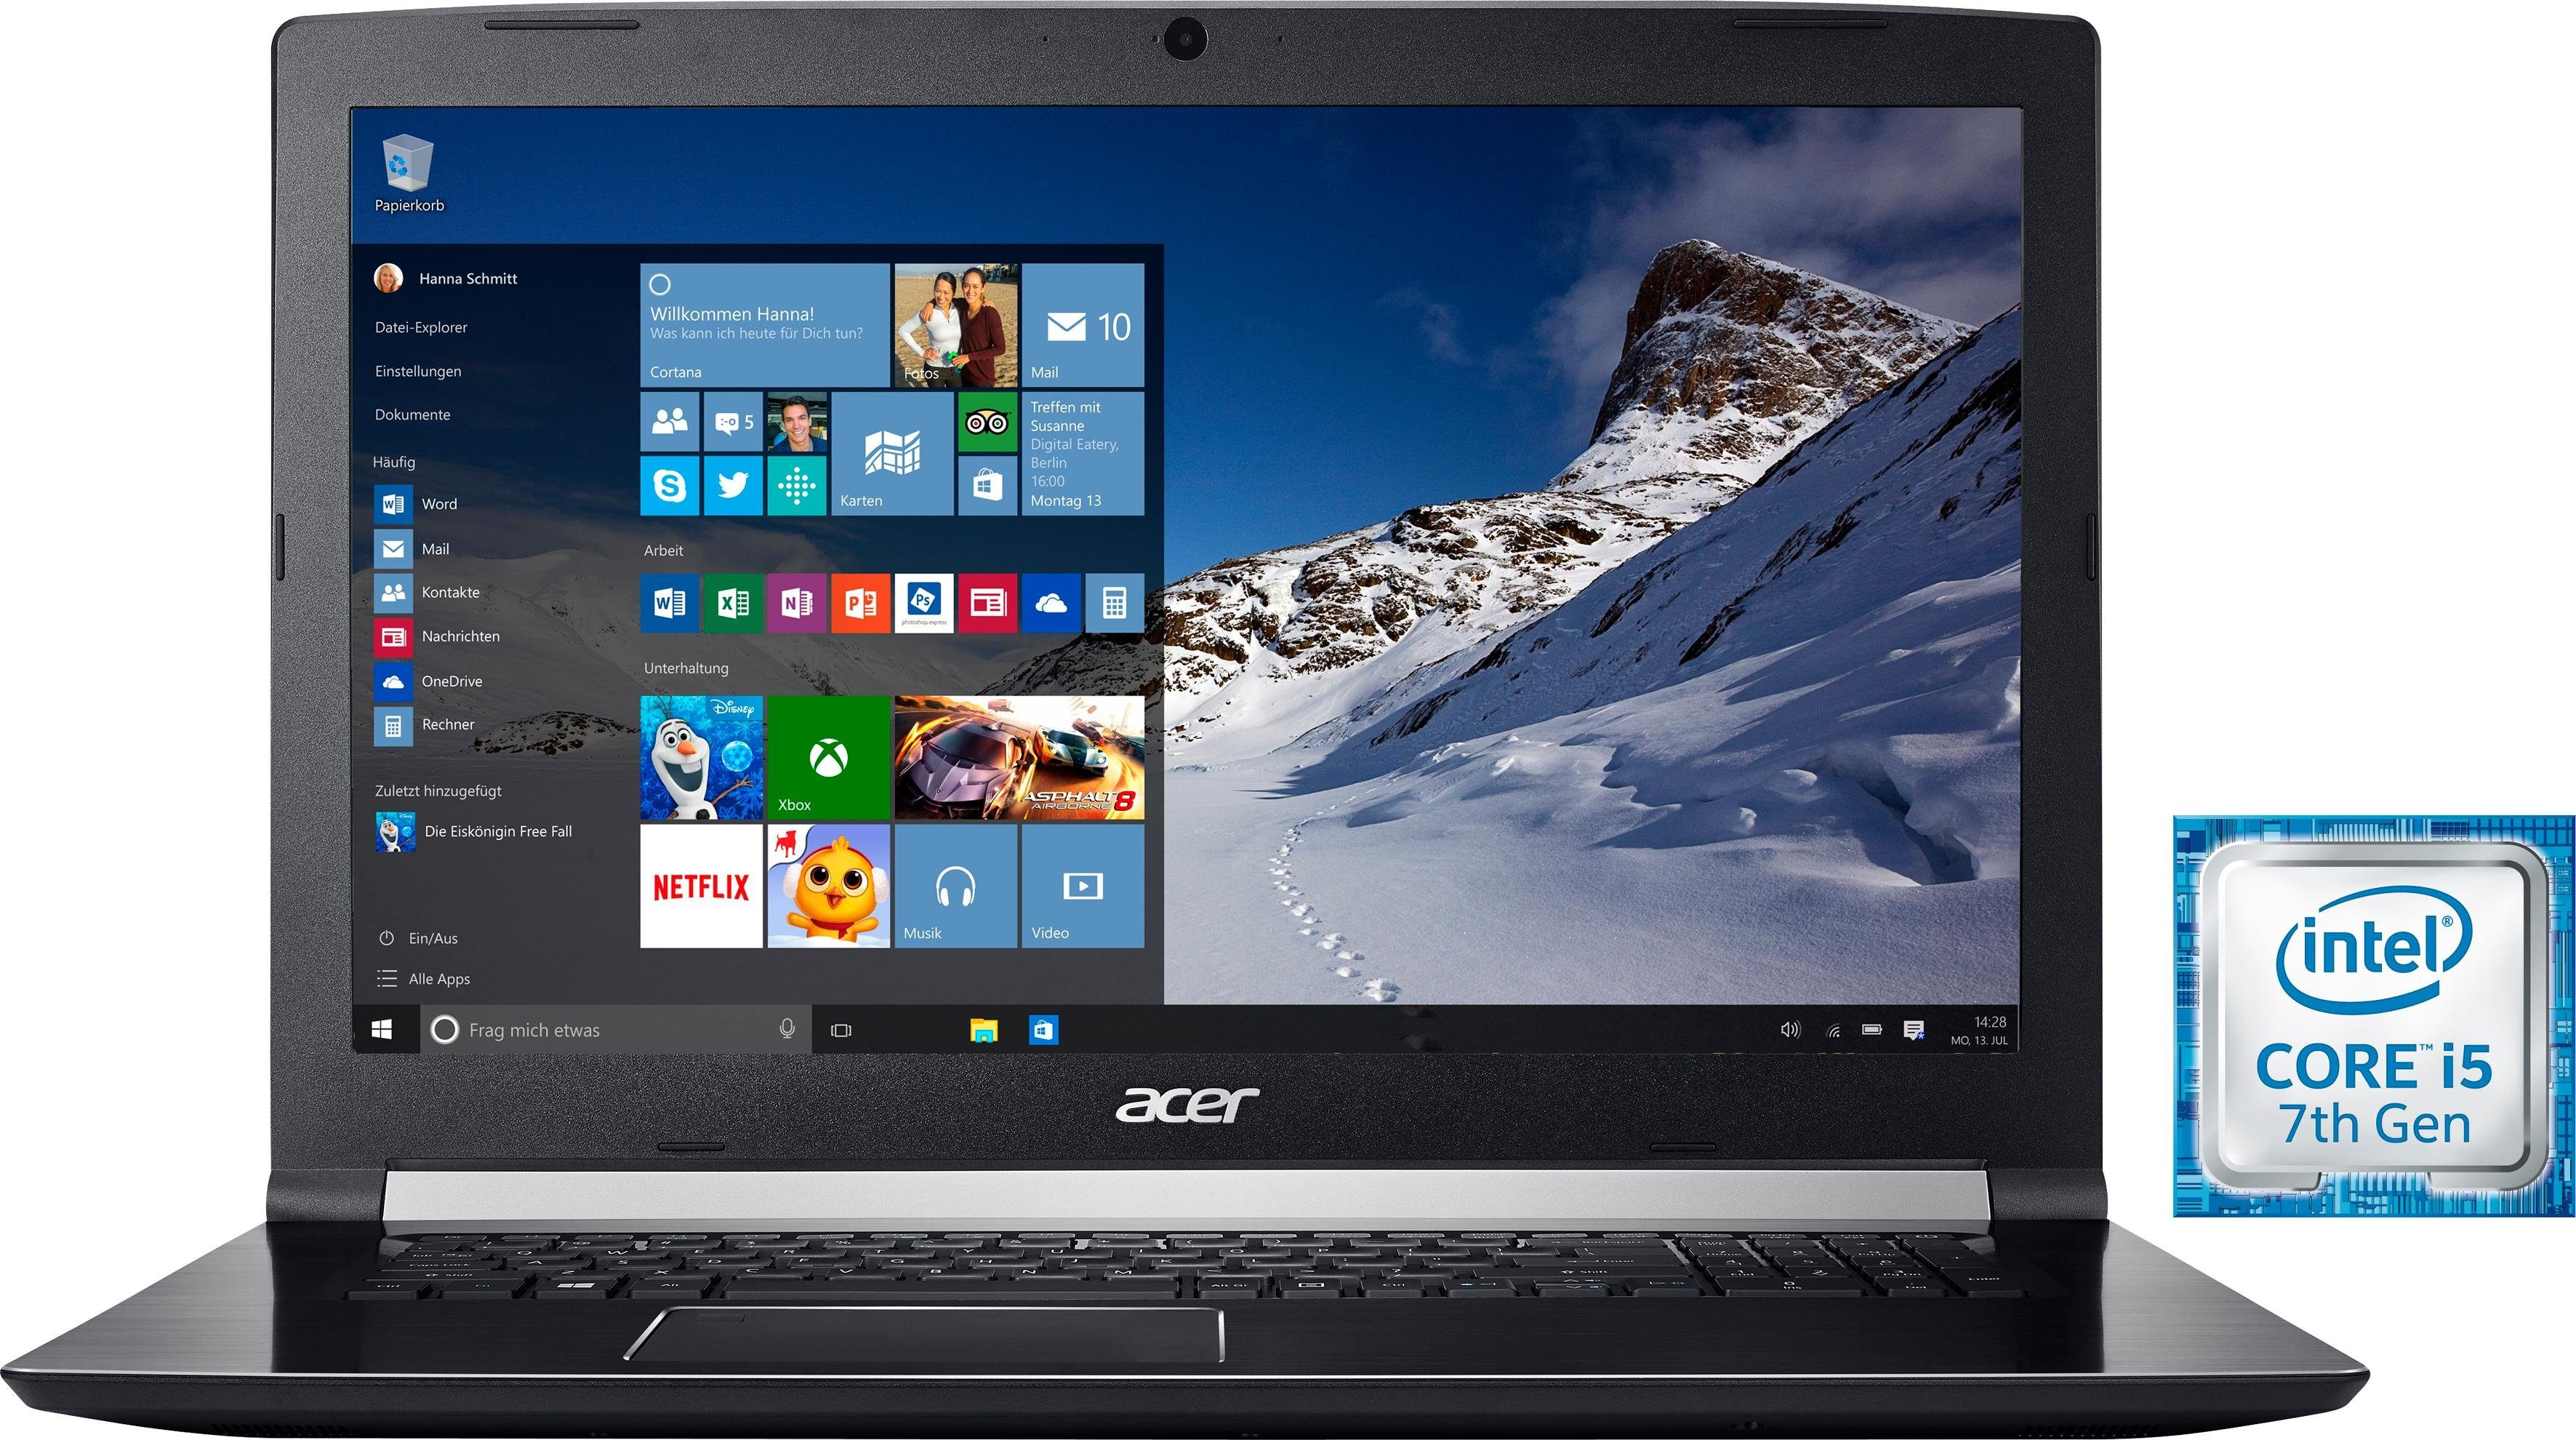 Acer A717-71G-55K6 Notebook (43,94 cm/17,3 Zoll, Intel Core i5, 1000 GB HDD, 256 GB SSD, inkl. Office 365 Personal (ESD)